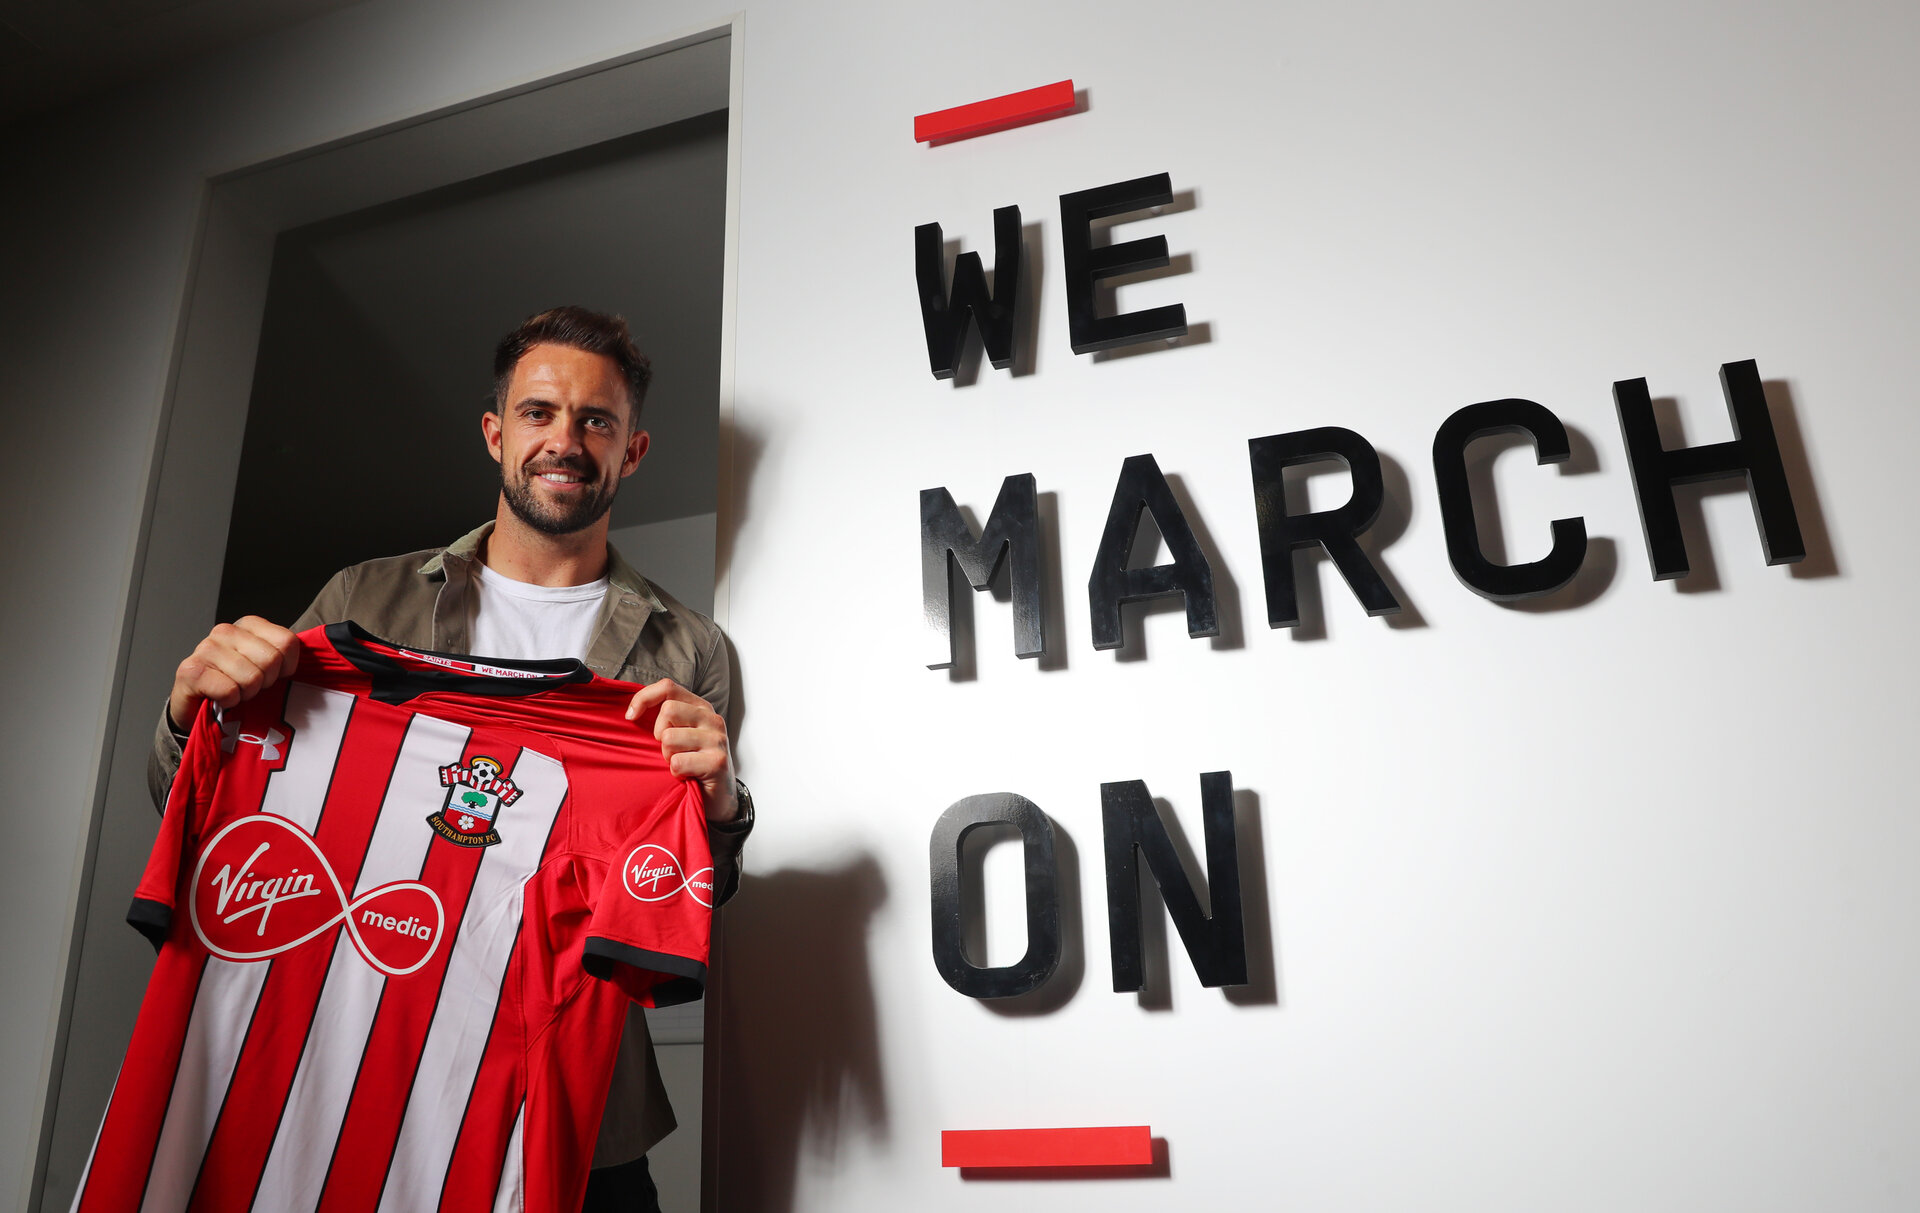 SOUTHAMPTON, ENGLAND - AUGUST 09: Danny Ings joins Southampton FC on a season long loan deal from Liverpool, pictured at the Staplewood Campus on August 9, 2018 in Southampton, England. (Photo by Matt Watson/Southampton FC via Getty Images)